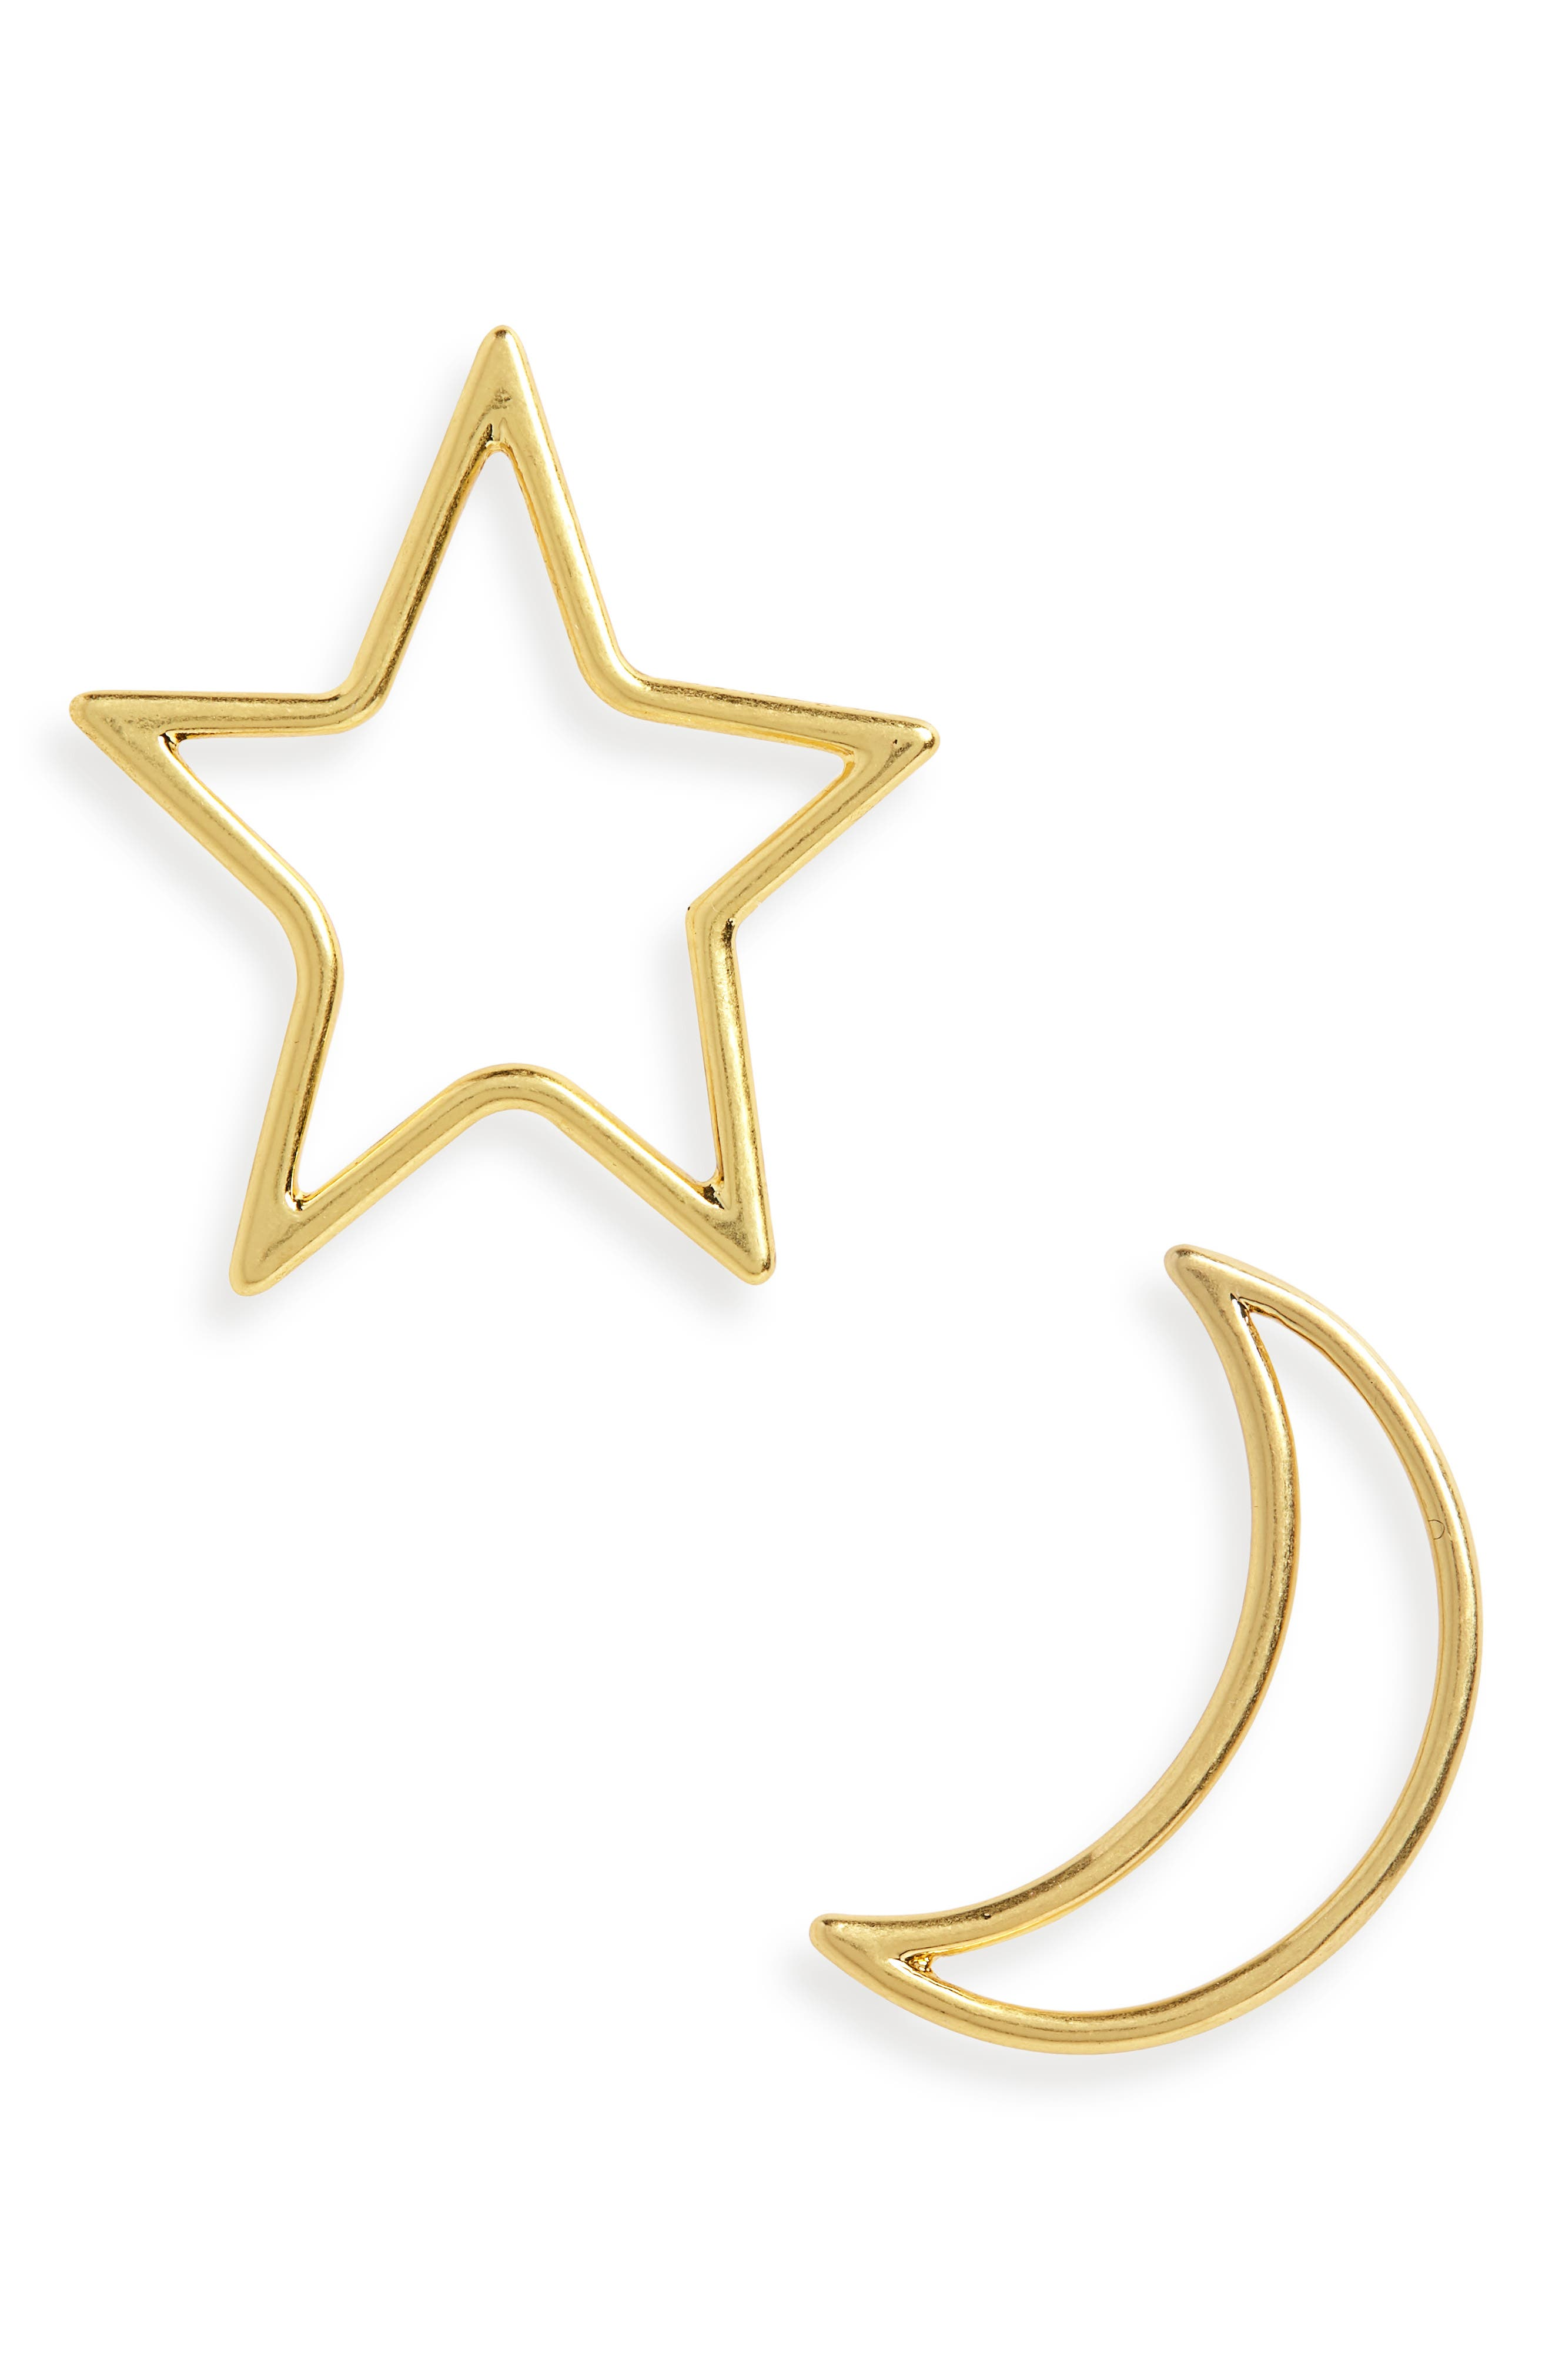 Star & Moon Statement Earrings,                             Main thumbnail 1, color,                             VINTAGE GOLD